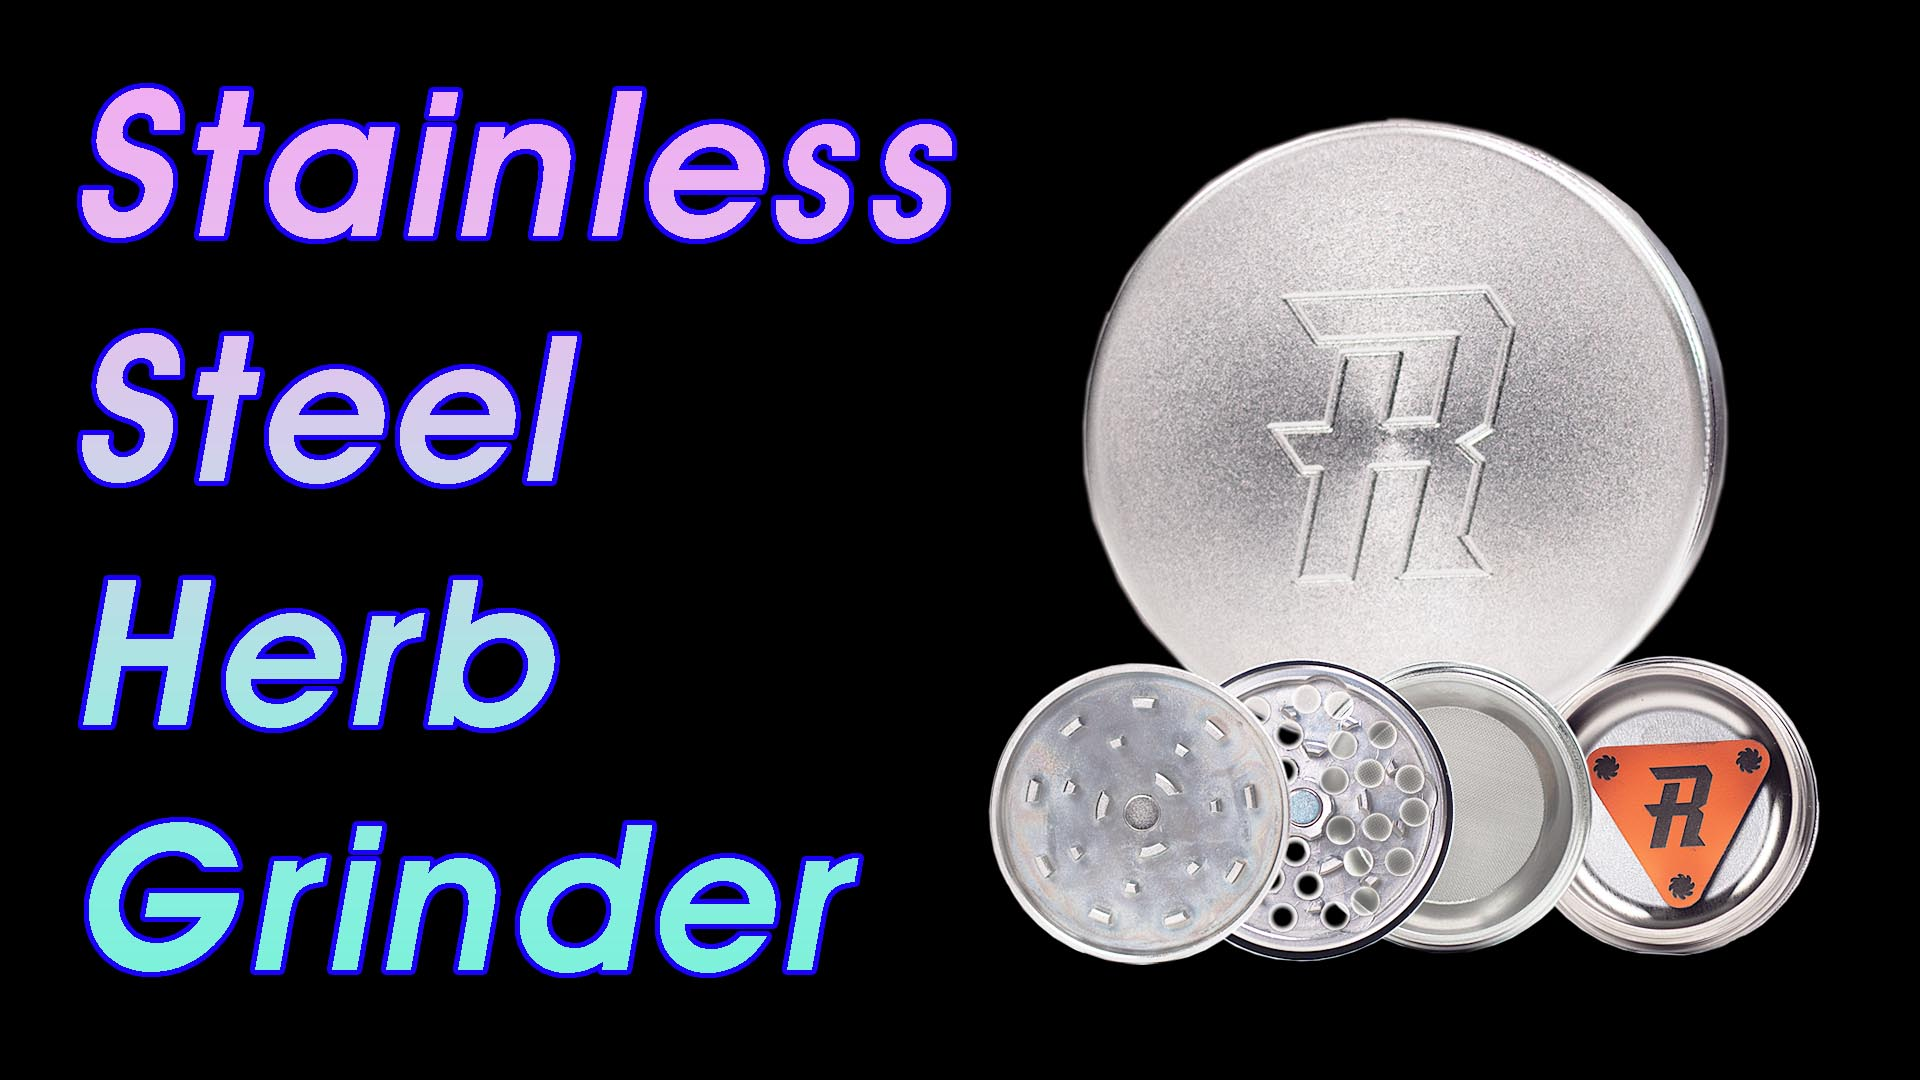 stainless steel herb grinder